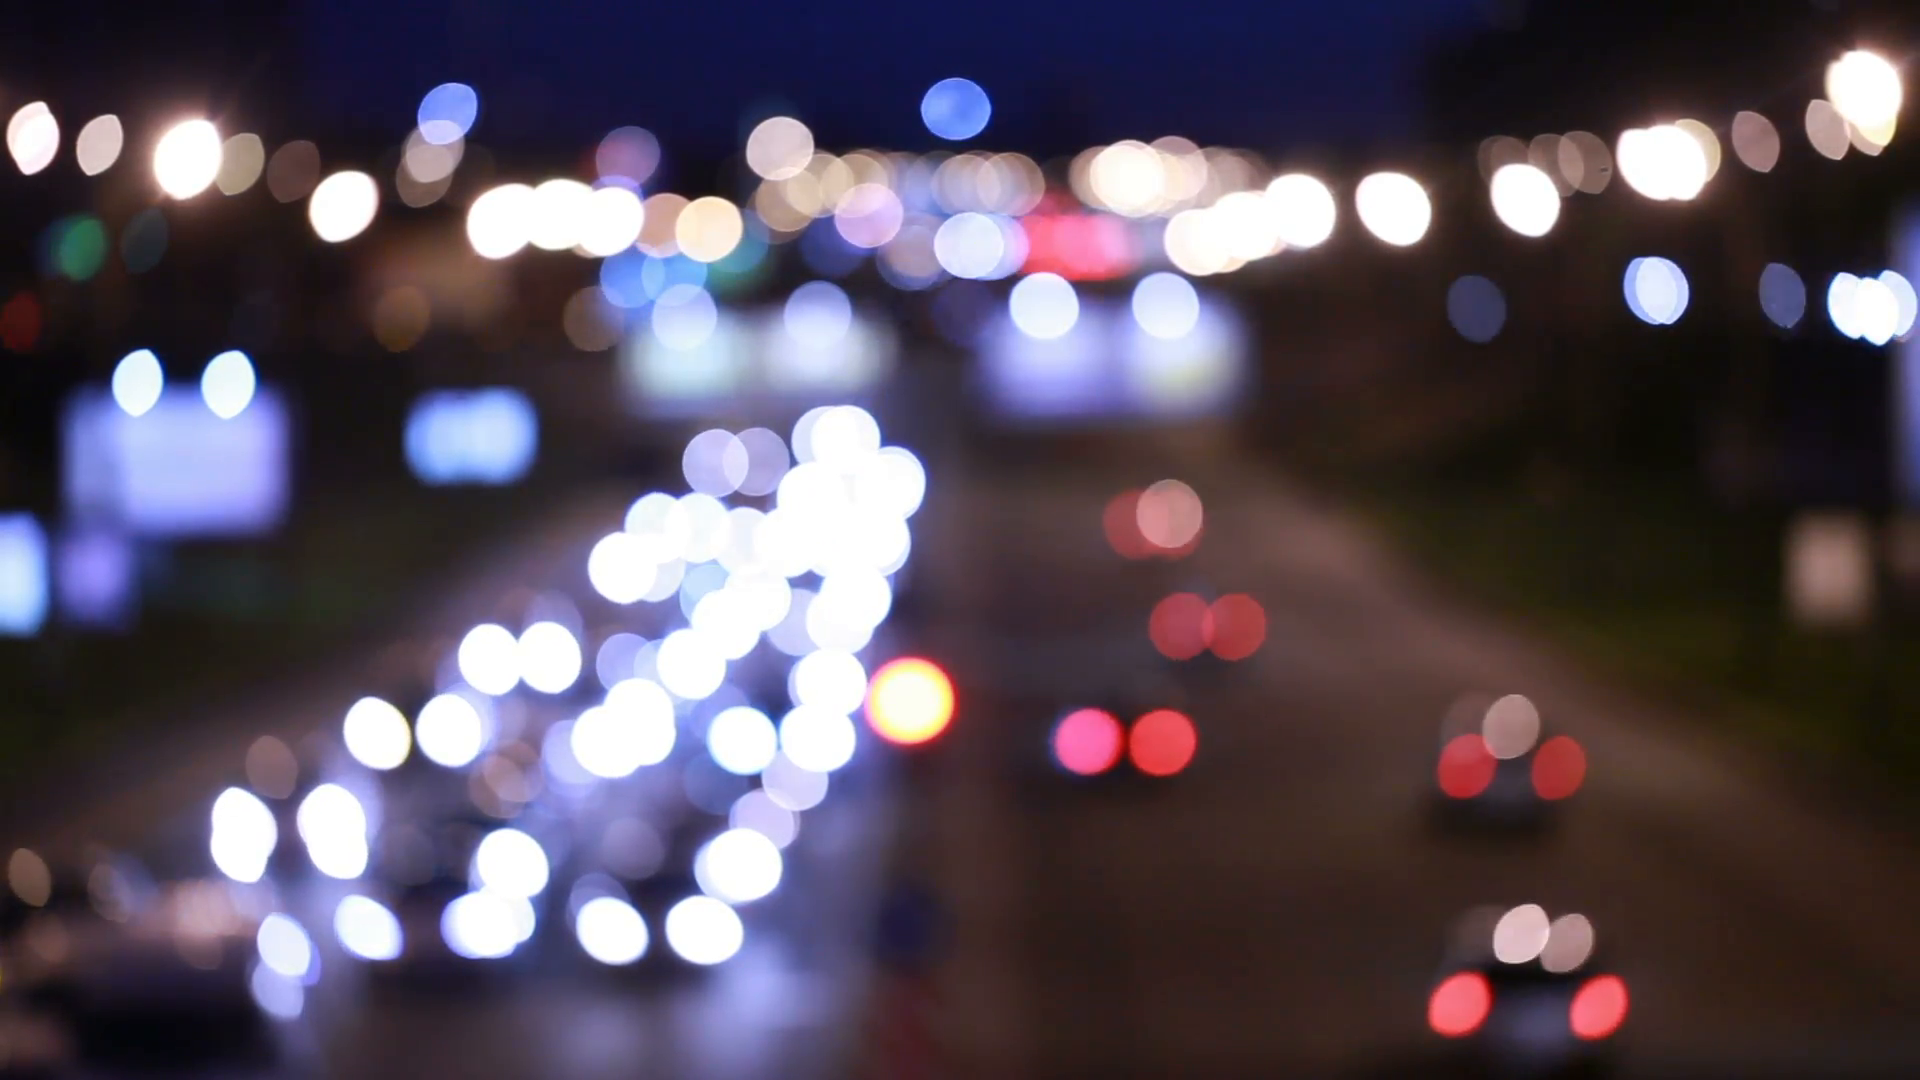 evening-traffic-the-city-lights-motion-blur-abstract-background_4jxwnkqn__F0000